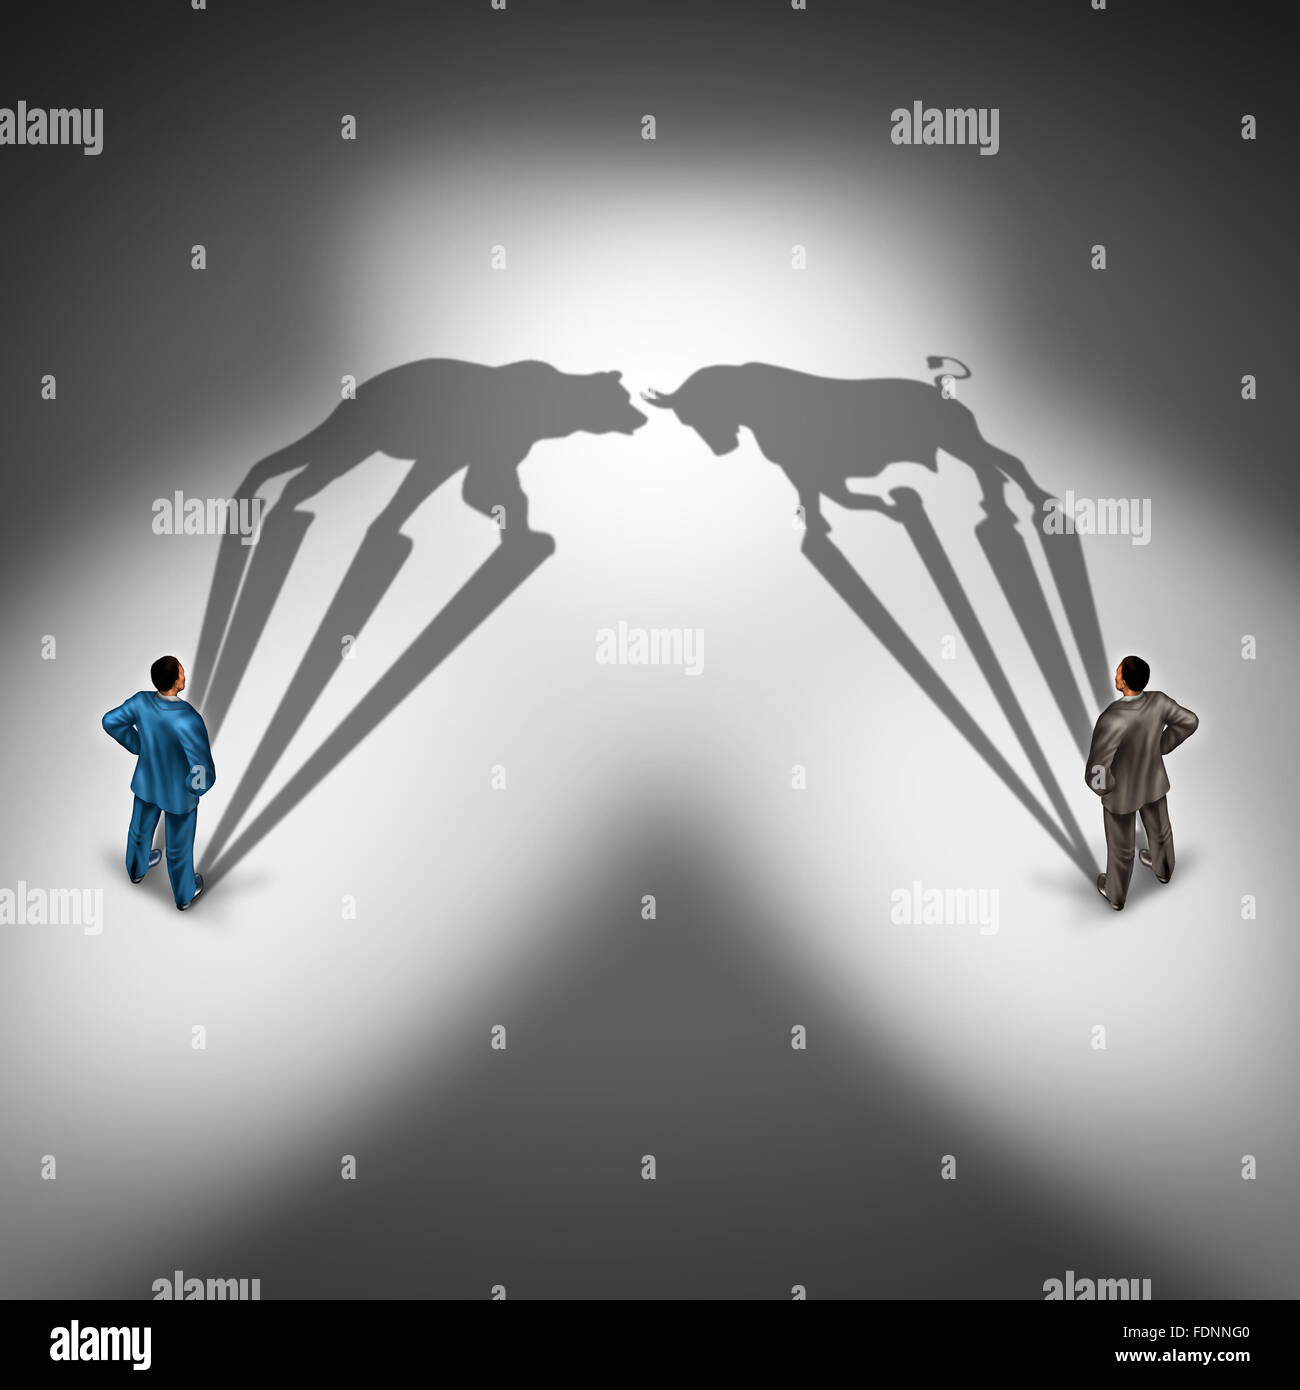 Bear and bull investor trading and investing financial symbol with a two businessmen representing bearish and bullish Stock Photo